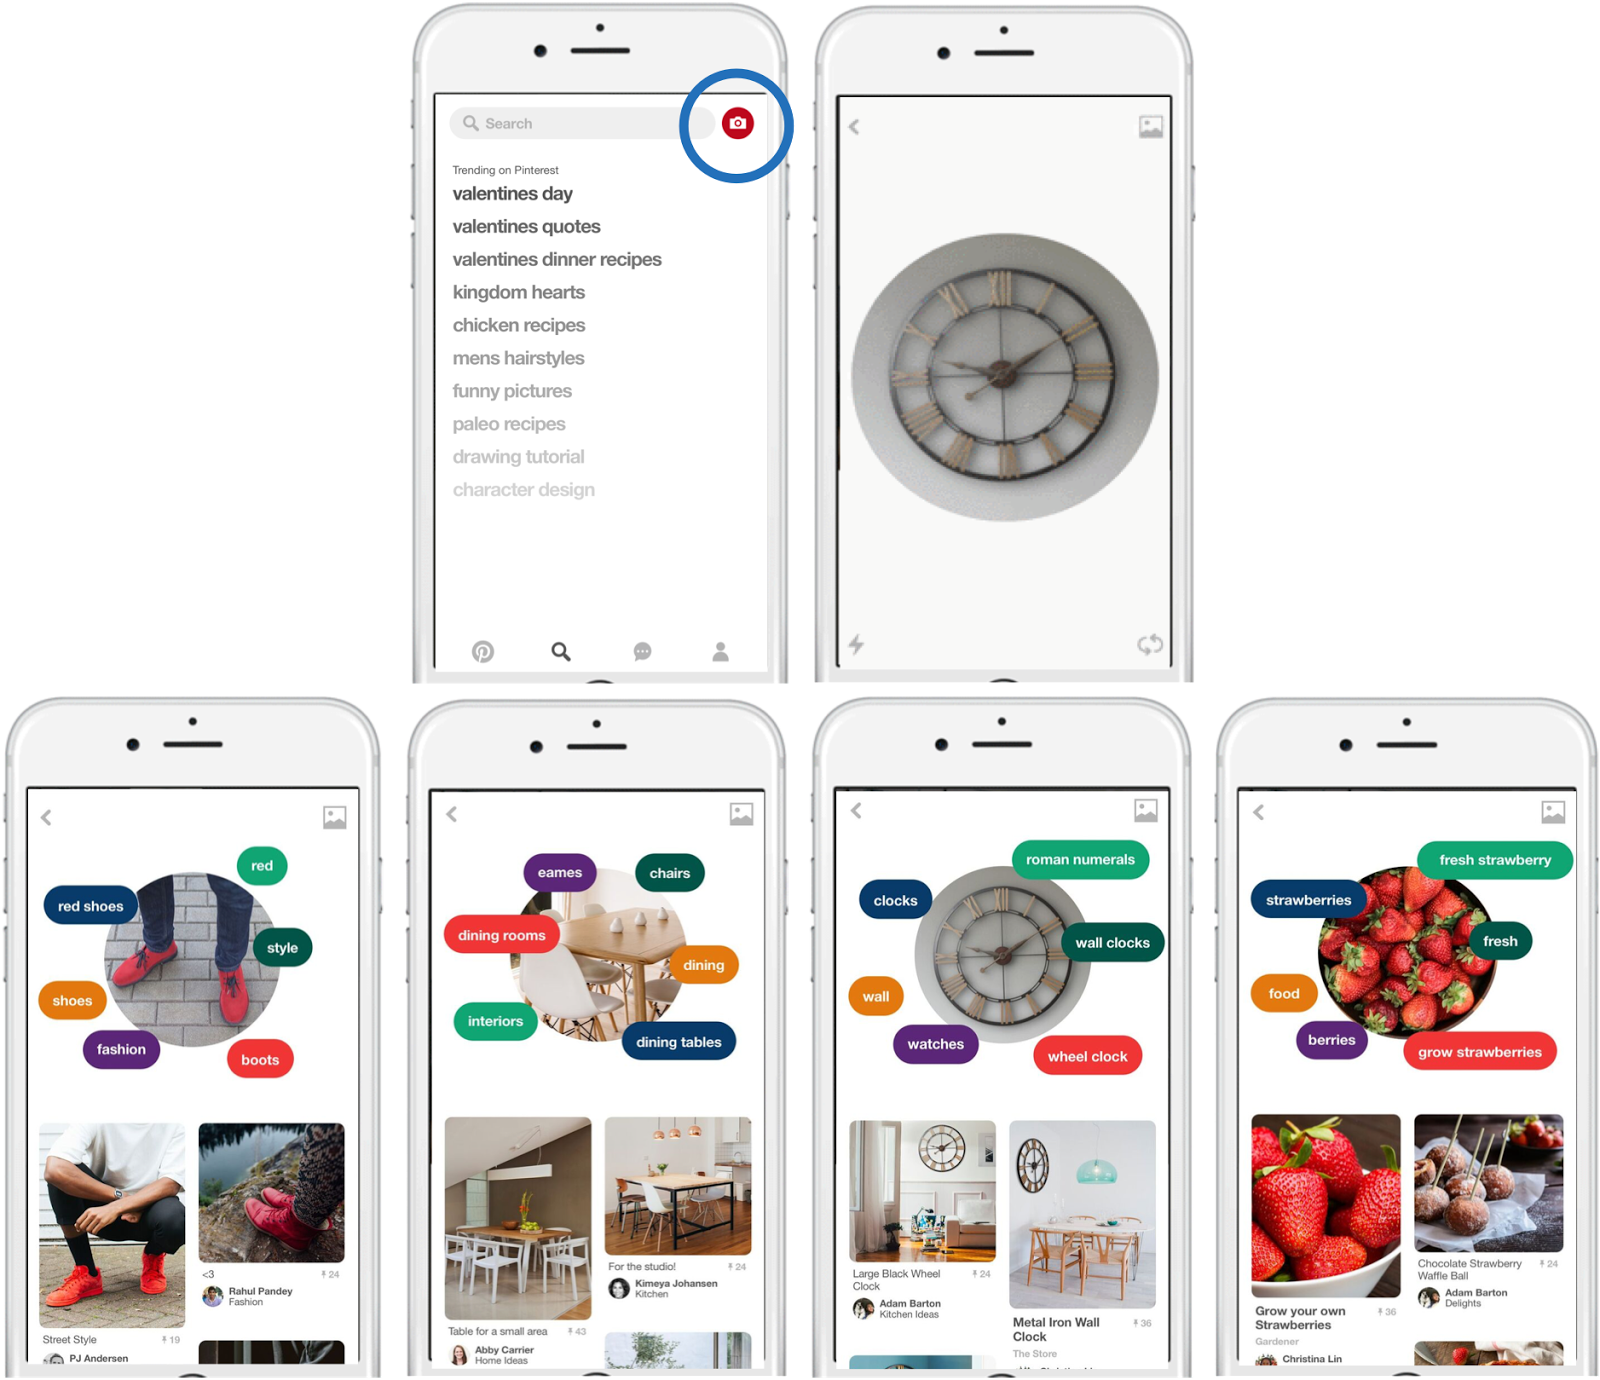 Pinterests Visual Lens How Computer Vision Explores Your Taste Pin Color Dots Desktop Wallpaper On Pinterest According To Ceo Ben Silbermann The Company Is Doing 3 Things With They Try Understand What Are Aesthetic Qualities Of